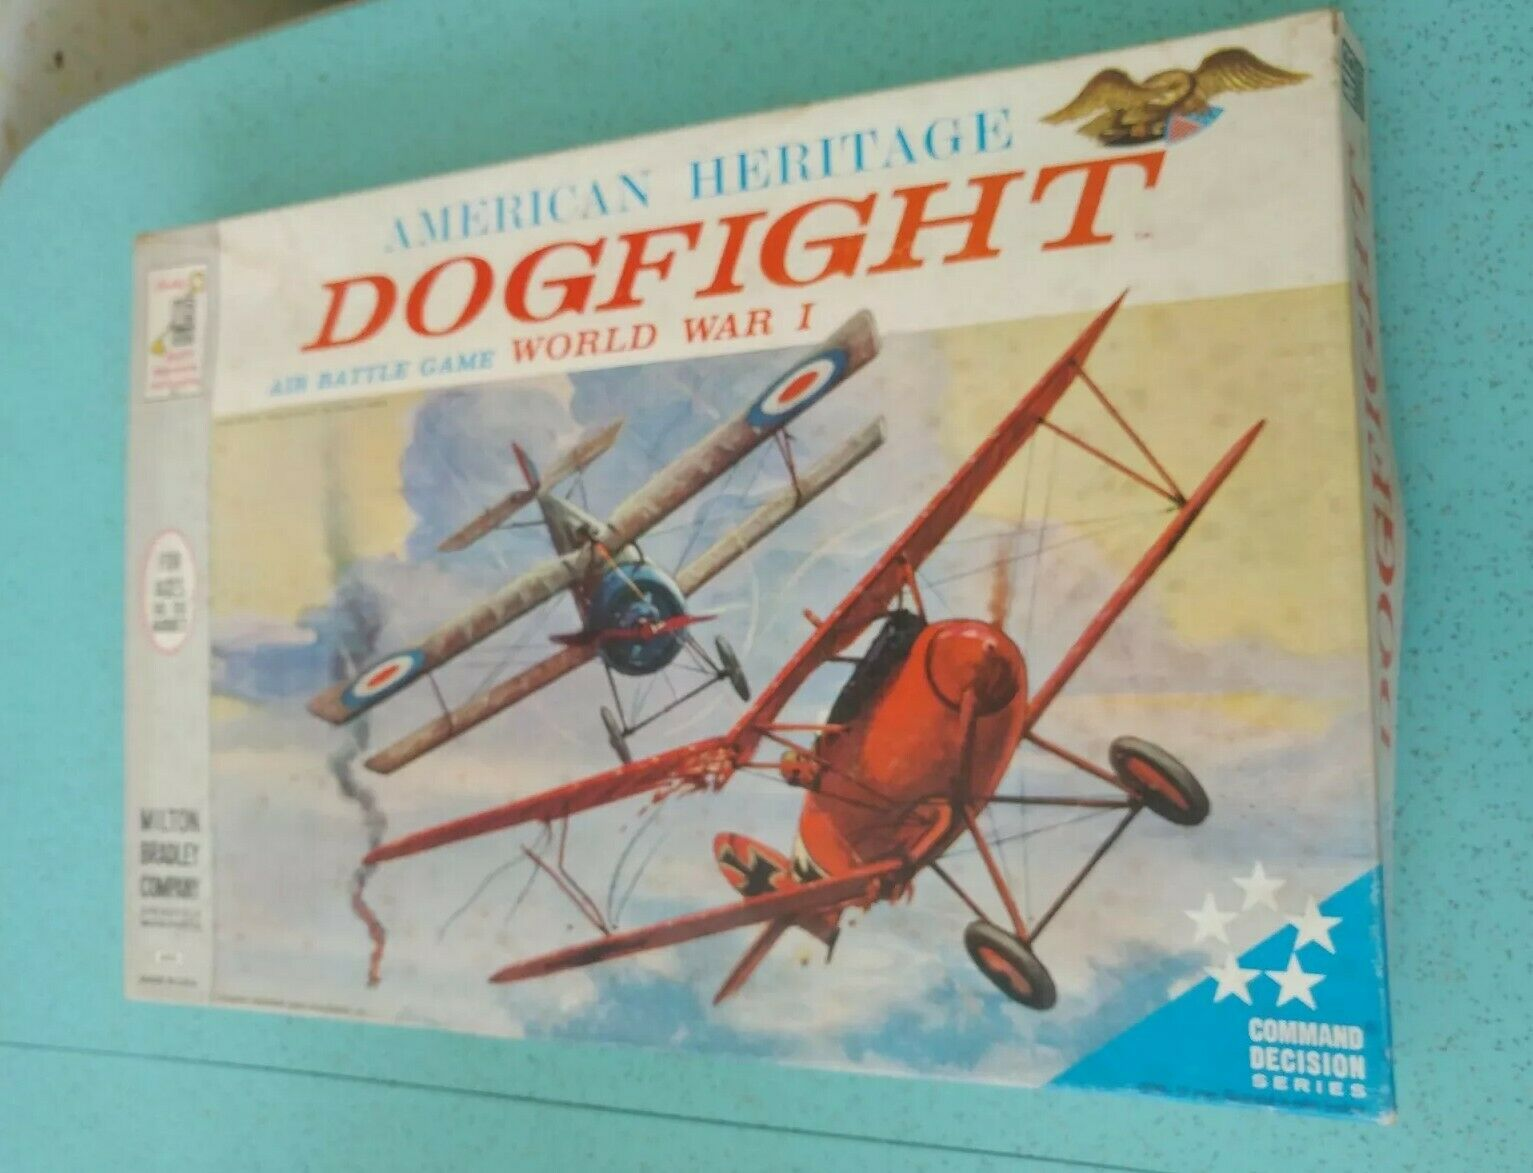 Vintage 1963 American Heritage Dogfight WWI Military Board Game